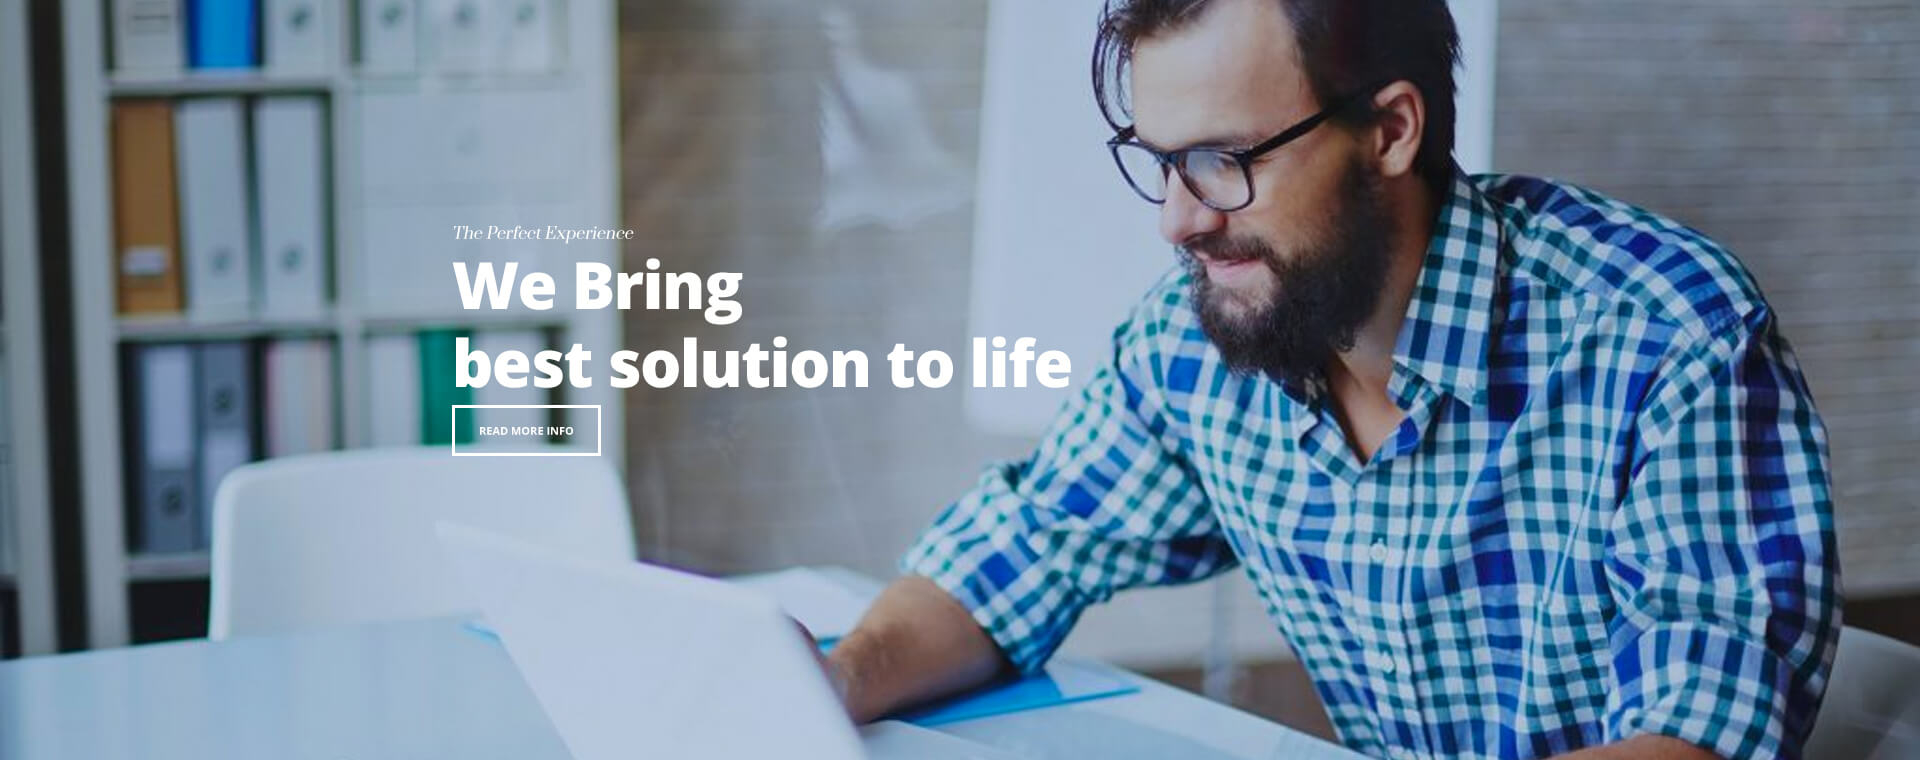 We Bring best solution to life